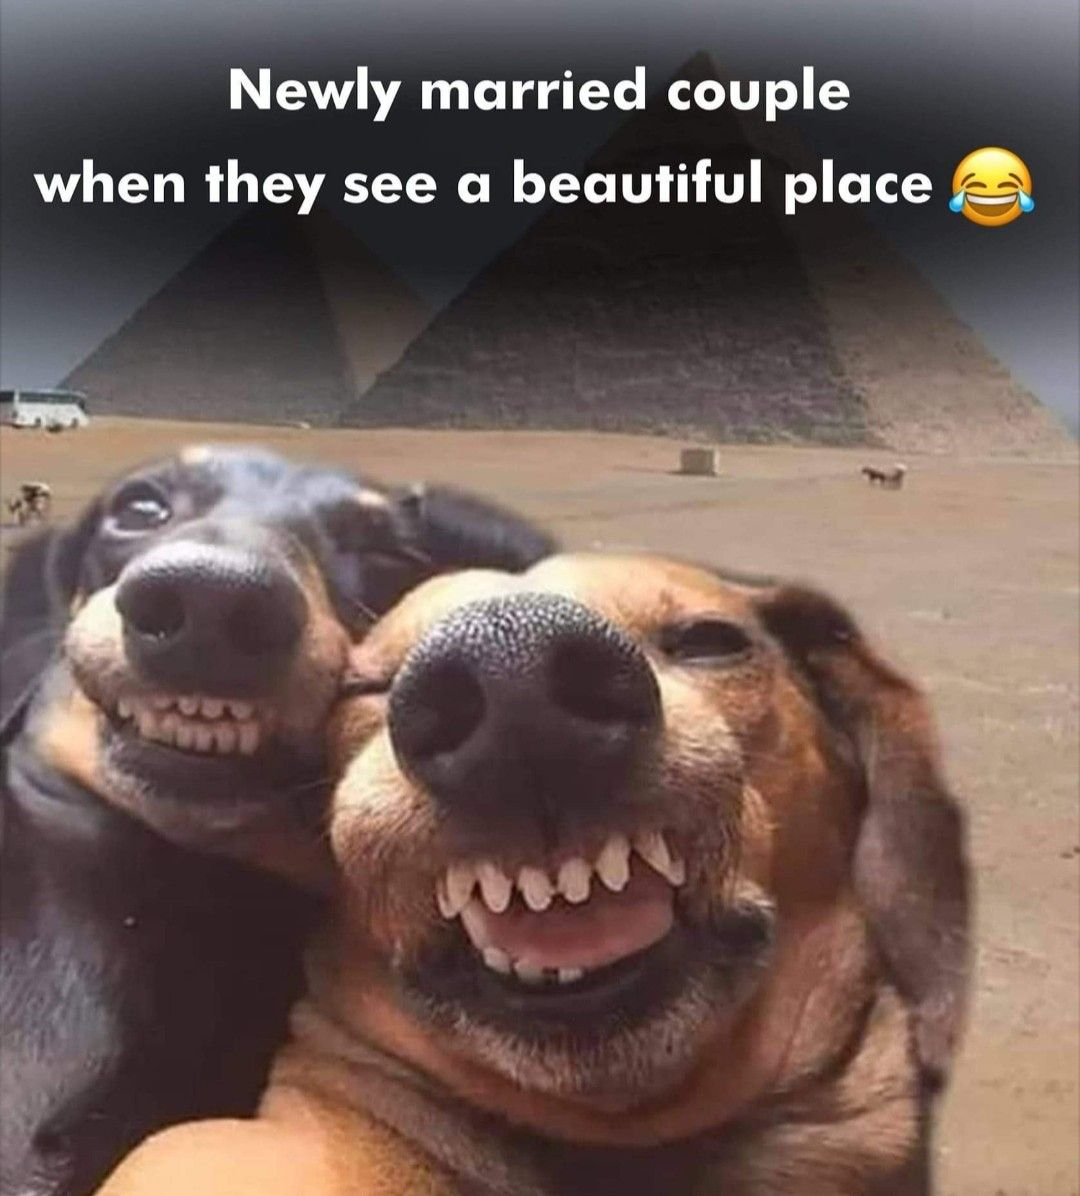 Pin By Fathi Nuuh On Funny Newly Married Couple Married Couple Newly Married